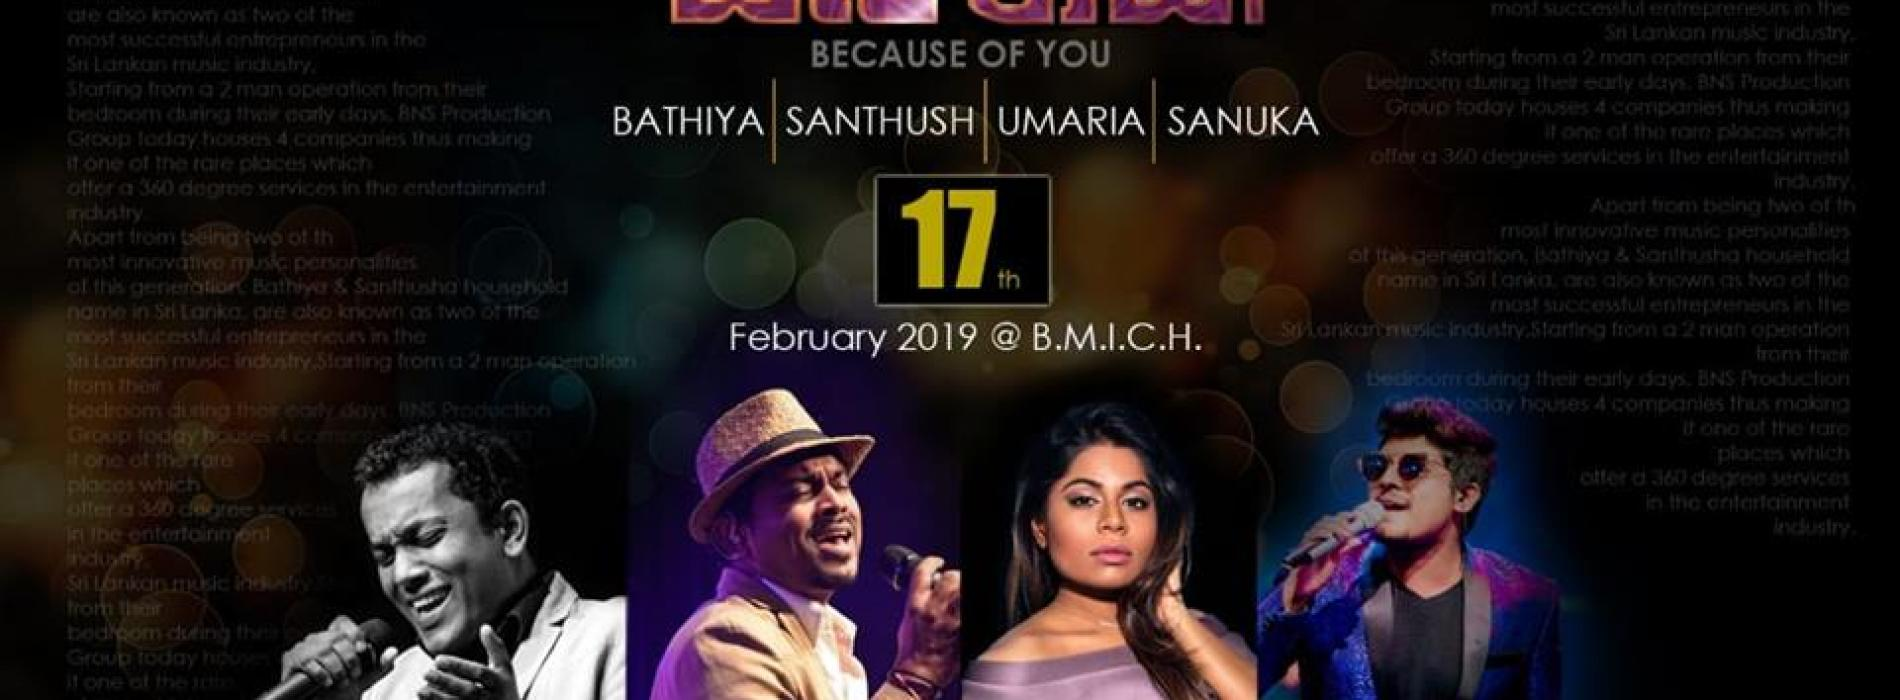 ඔබ නිසා (Because Of You) – Bathiya and Santhush